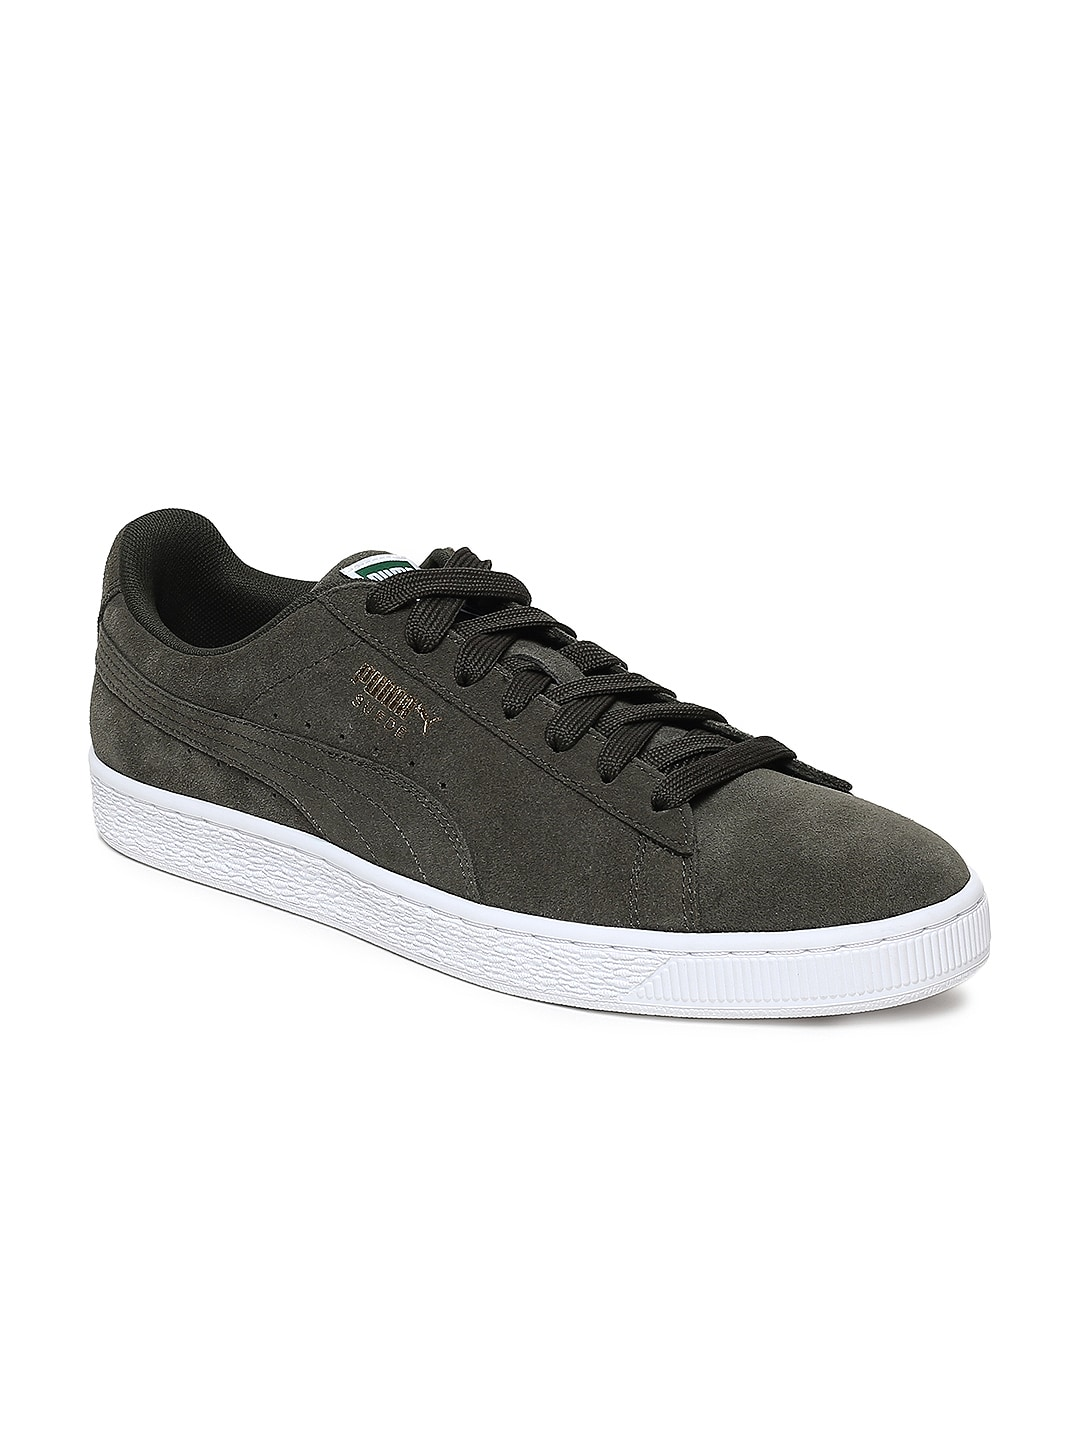 dc57d1e644 Puma Suede Shoe - Buy Puma Suede Shoe online in India